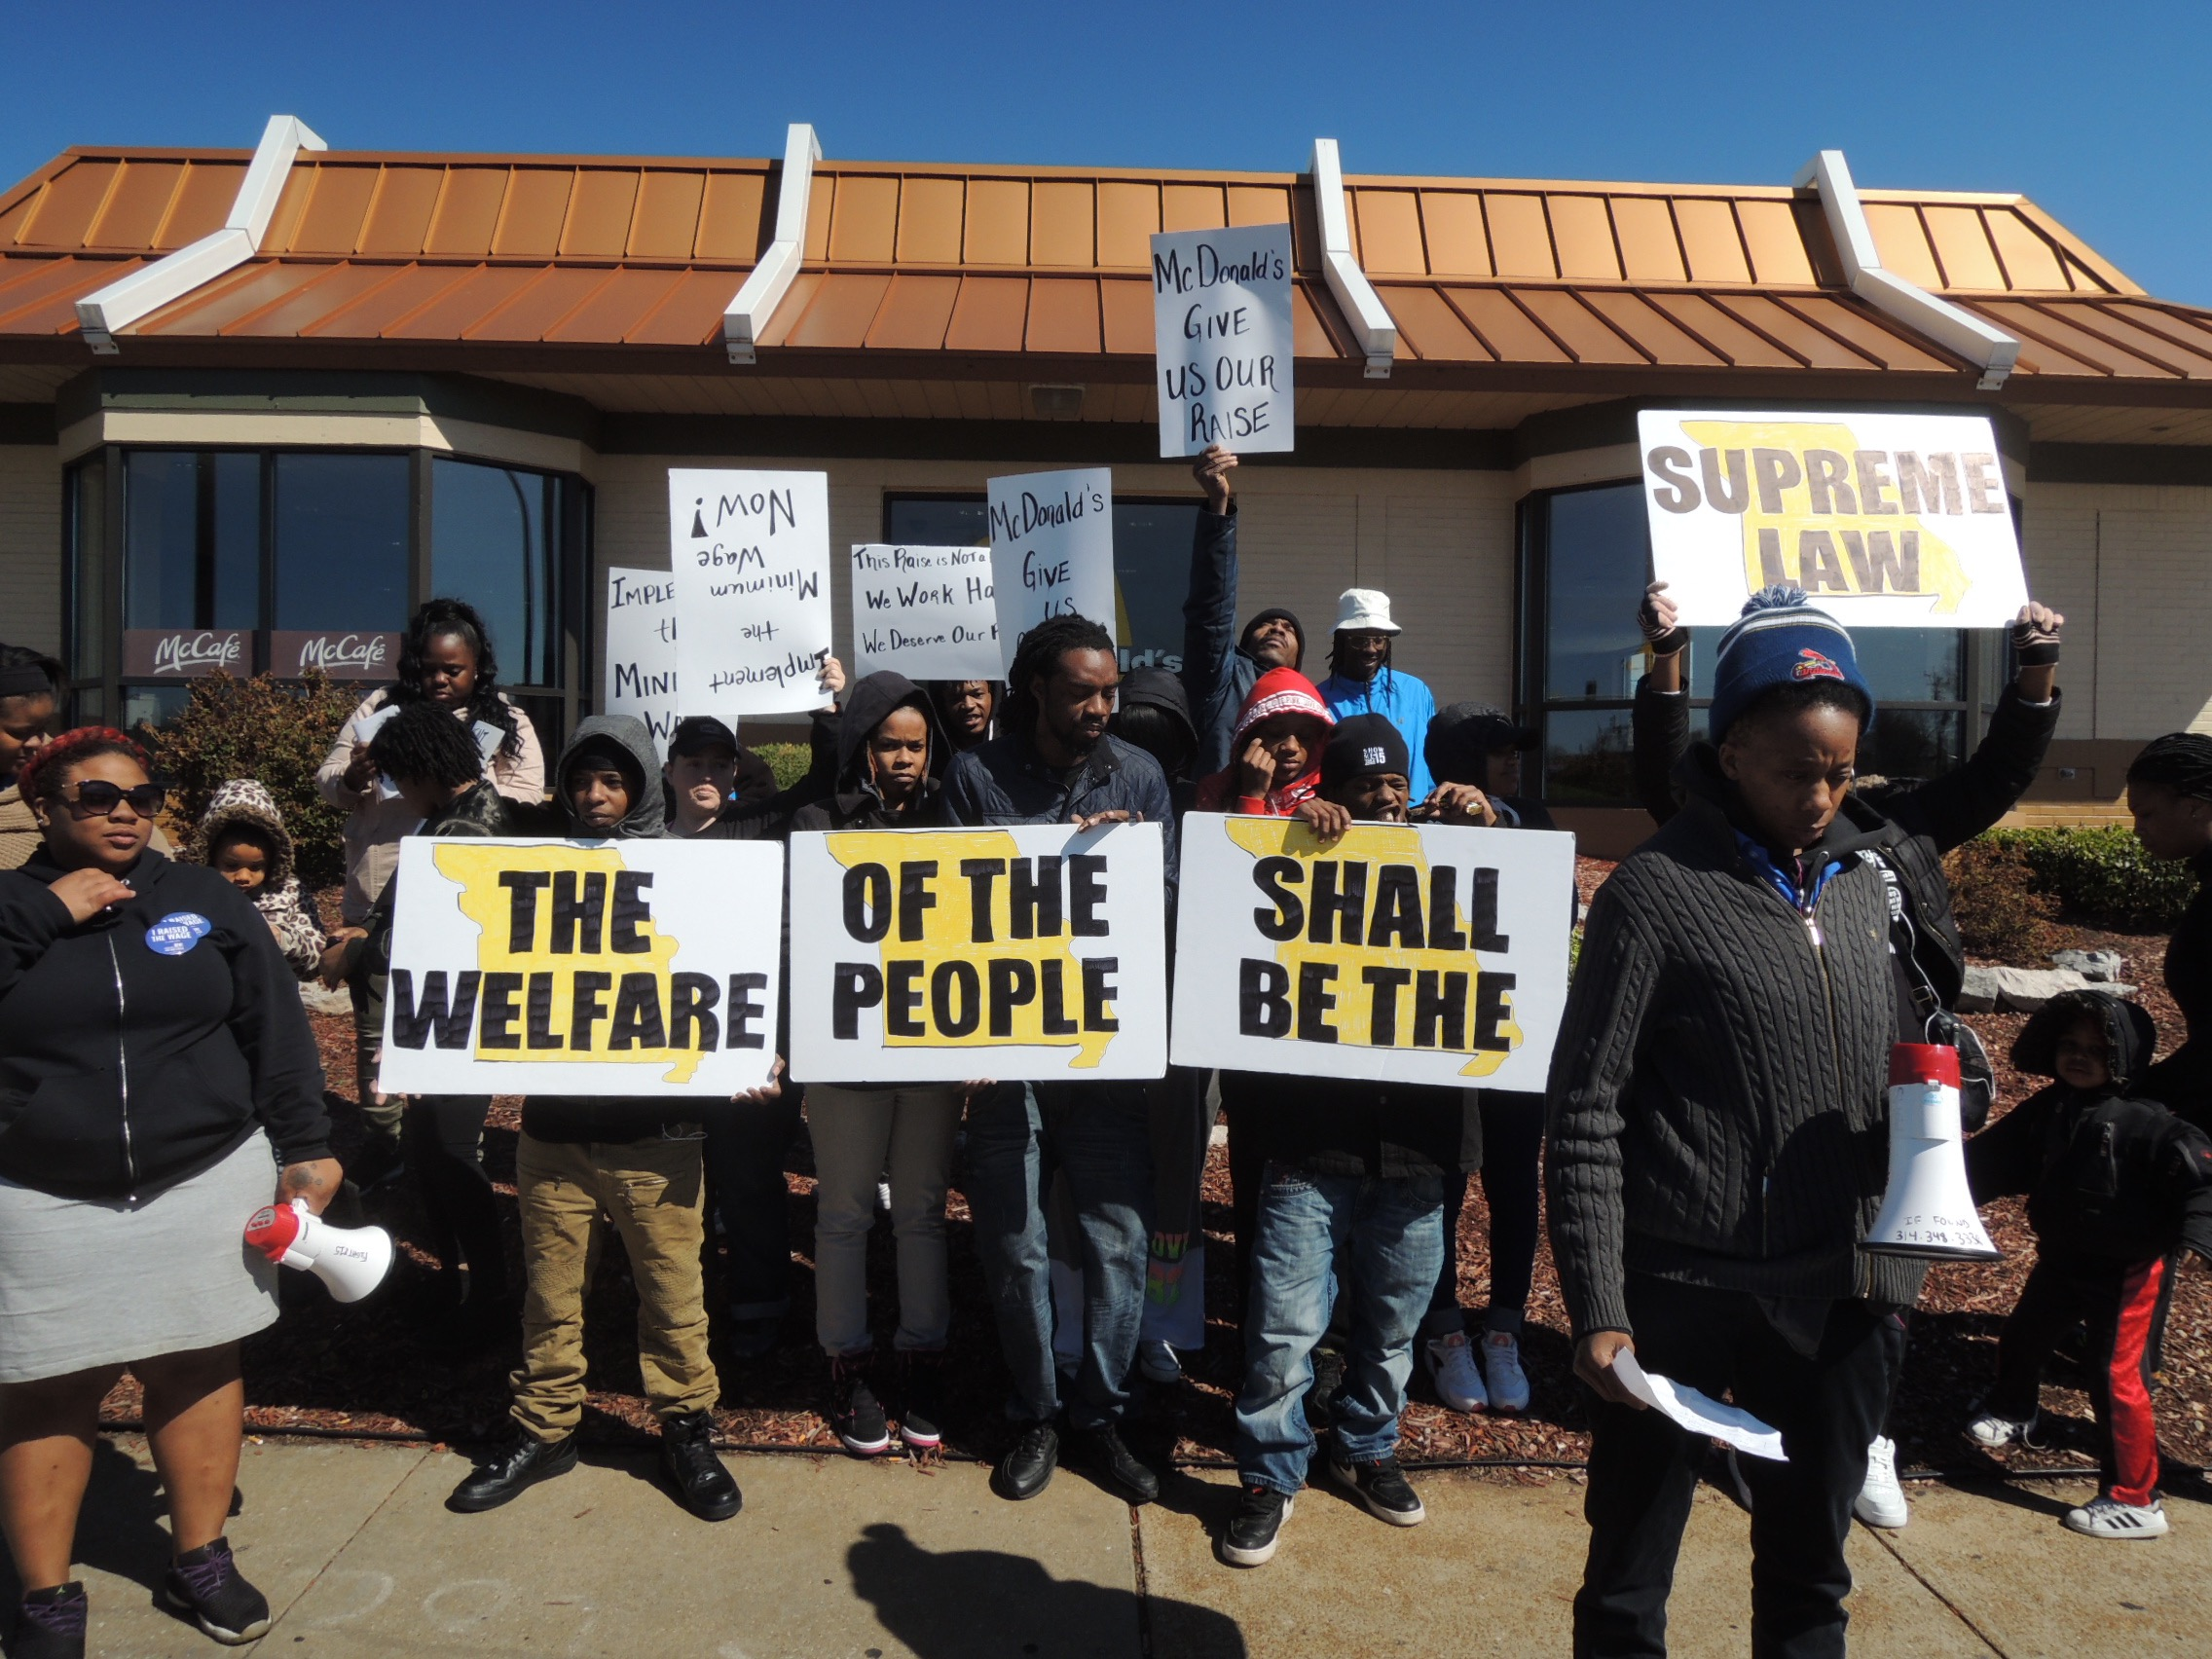 st louis low wage workers call for raise while legislature tries raise the wage low wage workers organized by show me 15 protested outside a mcdonalds on natural bridge road recently for st louis 10 minimum wage to